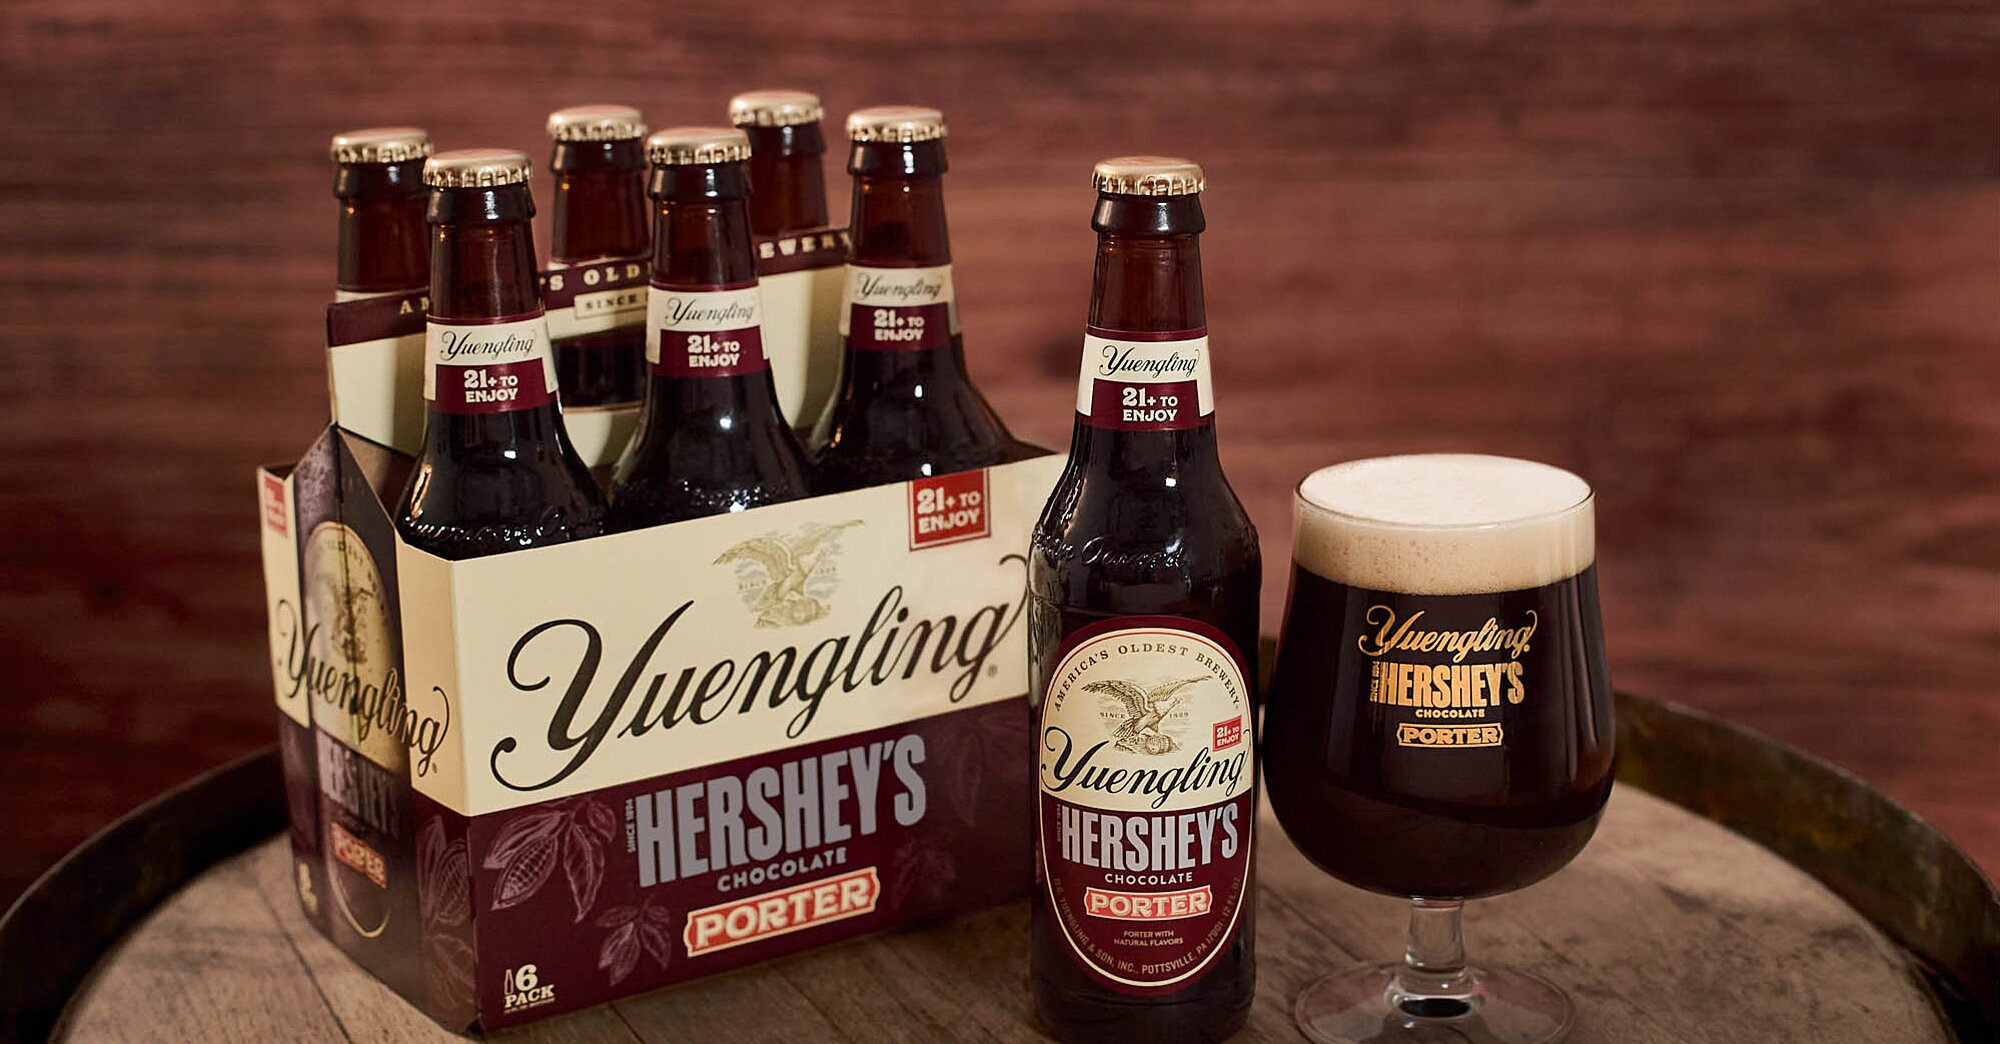 Yuengling's Hershey's Chocolate Beer Is Finally Getting a Wide Release